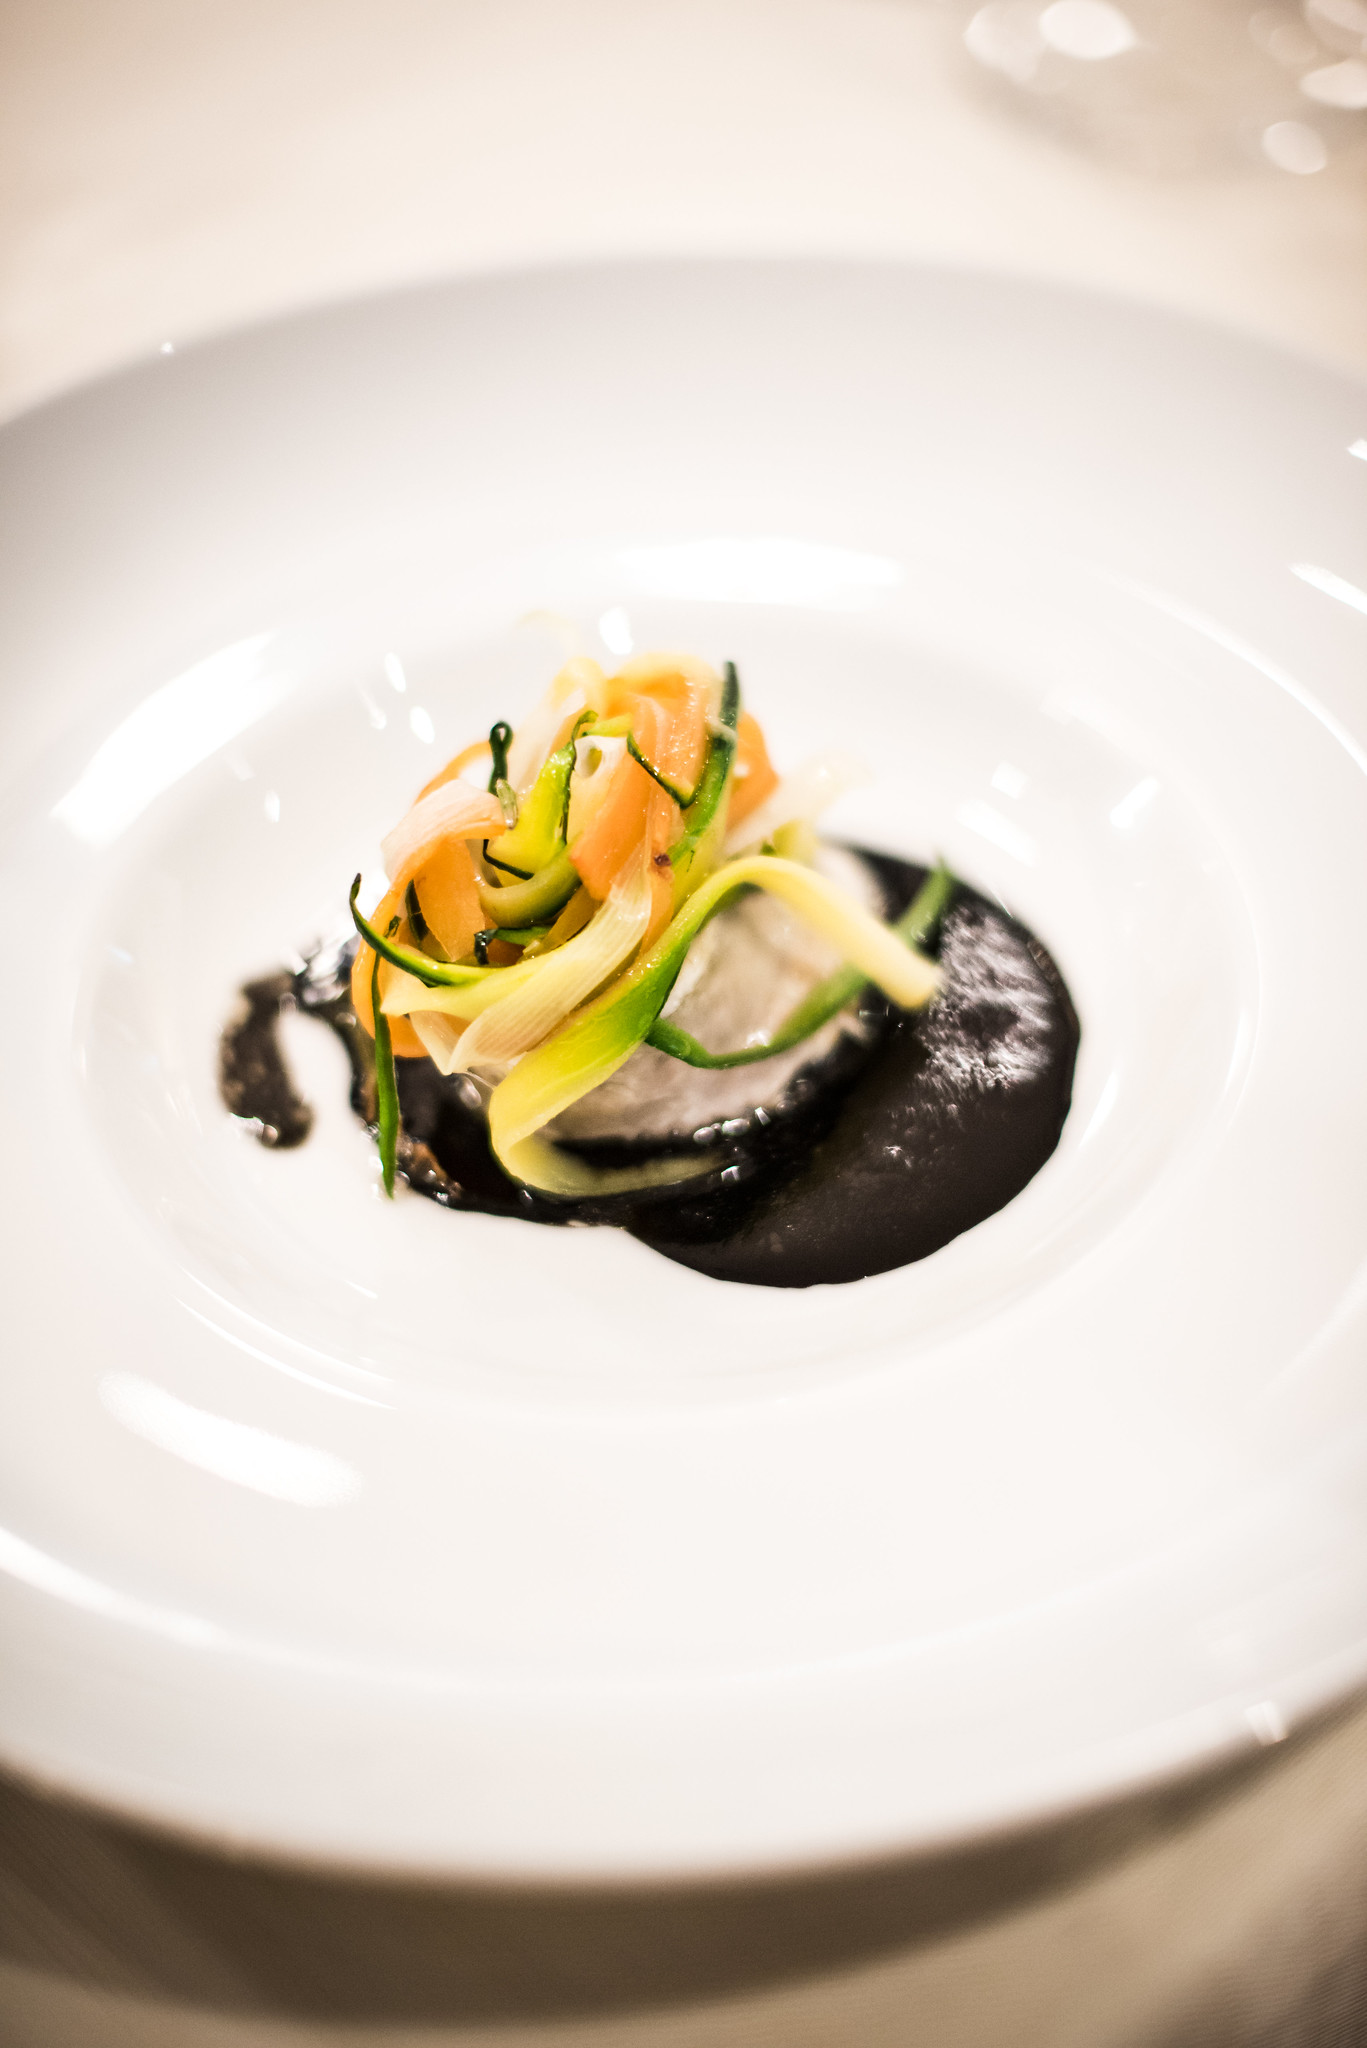 A delicate branzino is served with a vegetable medley and black squid ink sauce.